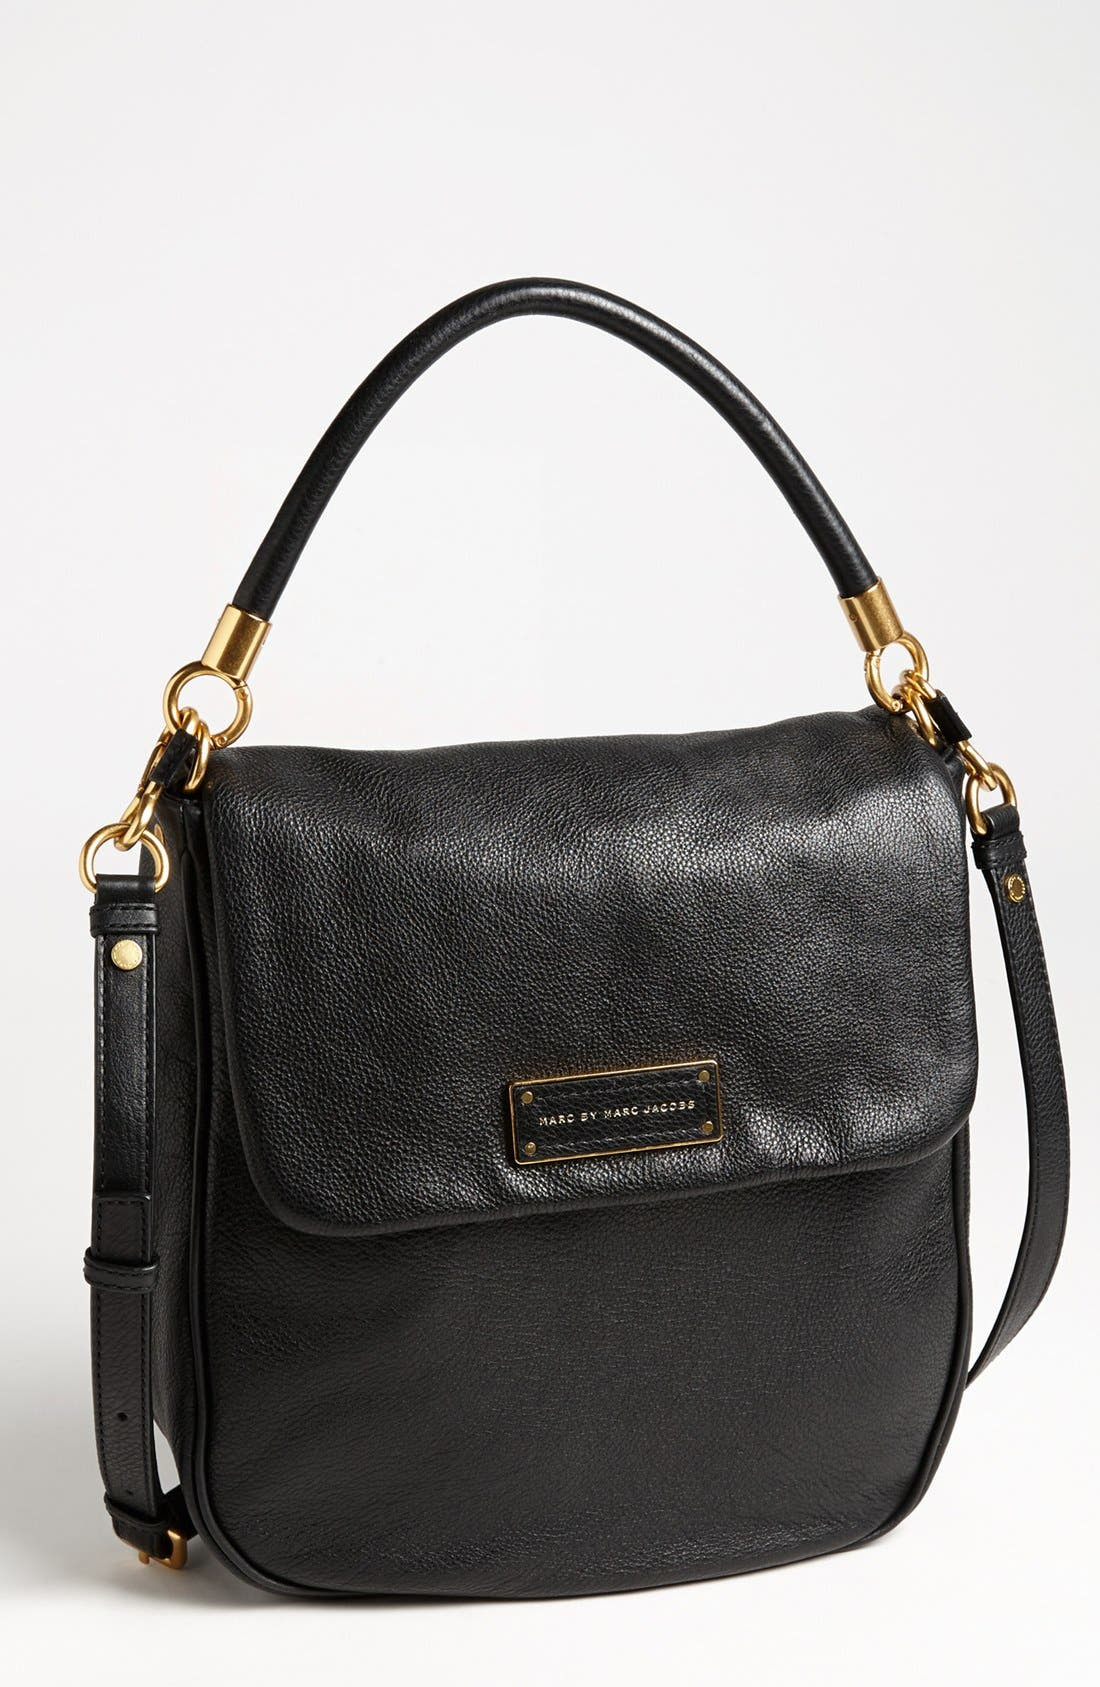 Main Image - MARC BY MARC JACOBS 'Too Hot to Handle - Laetitia' Leather Hobo